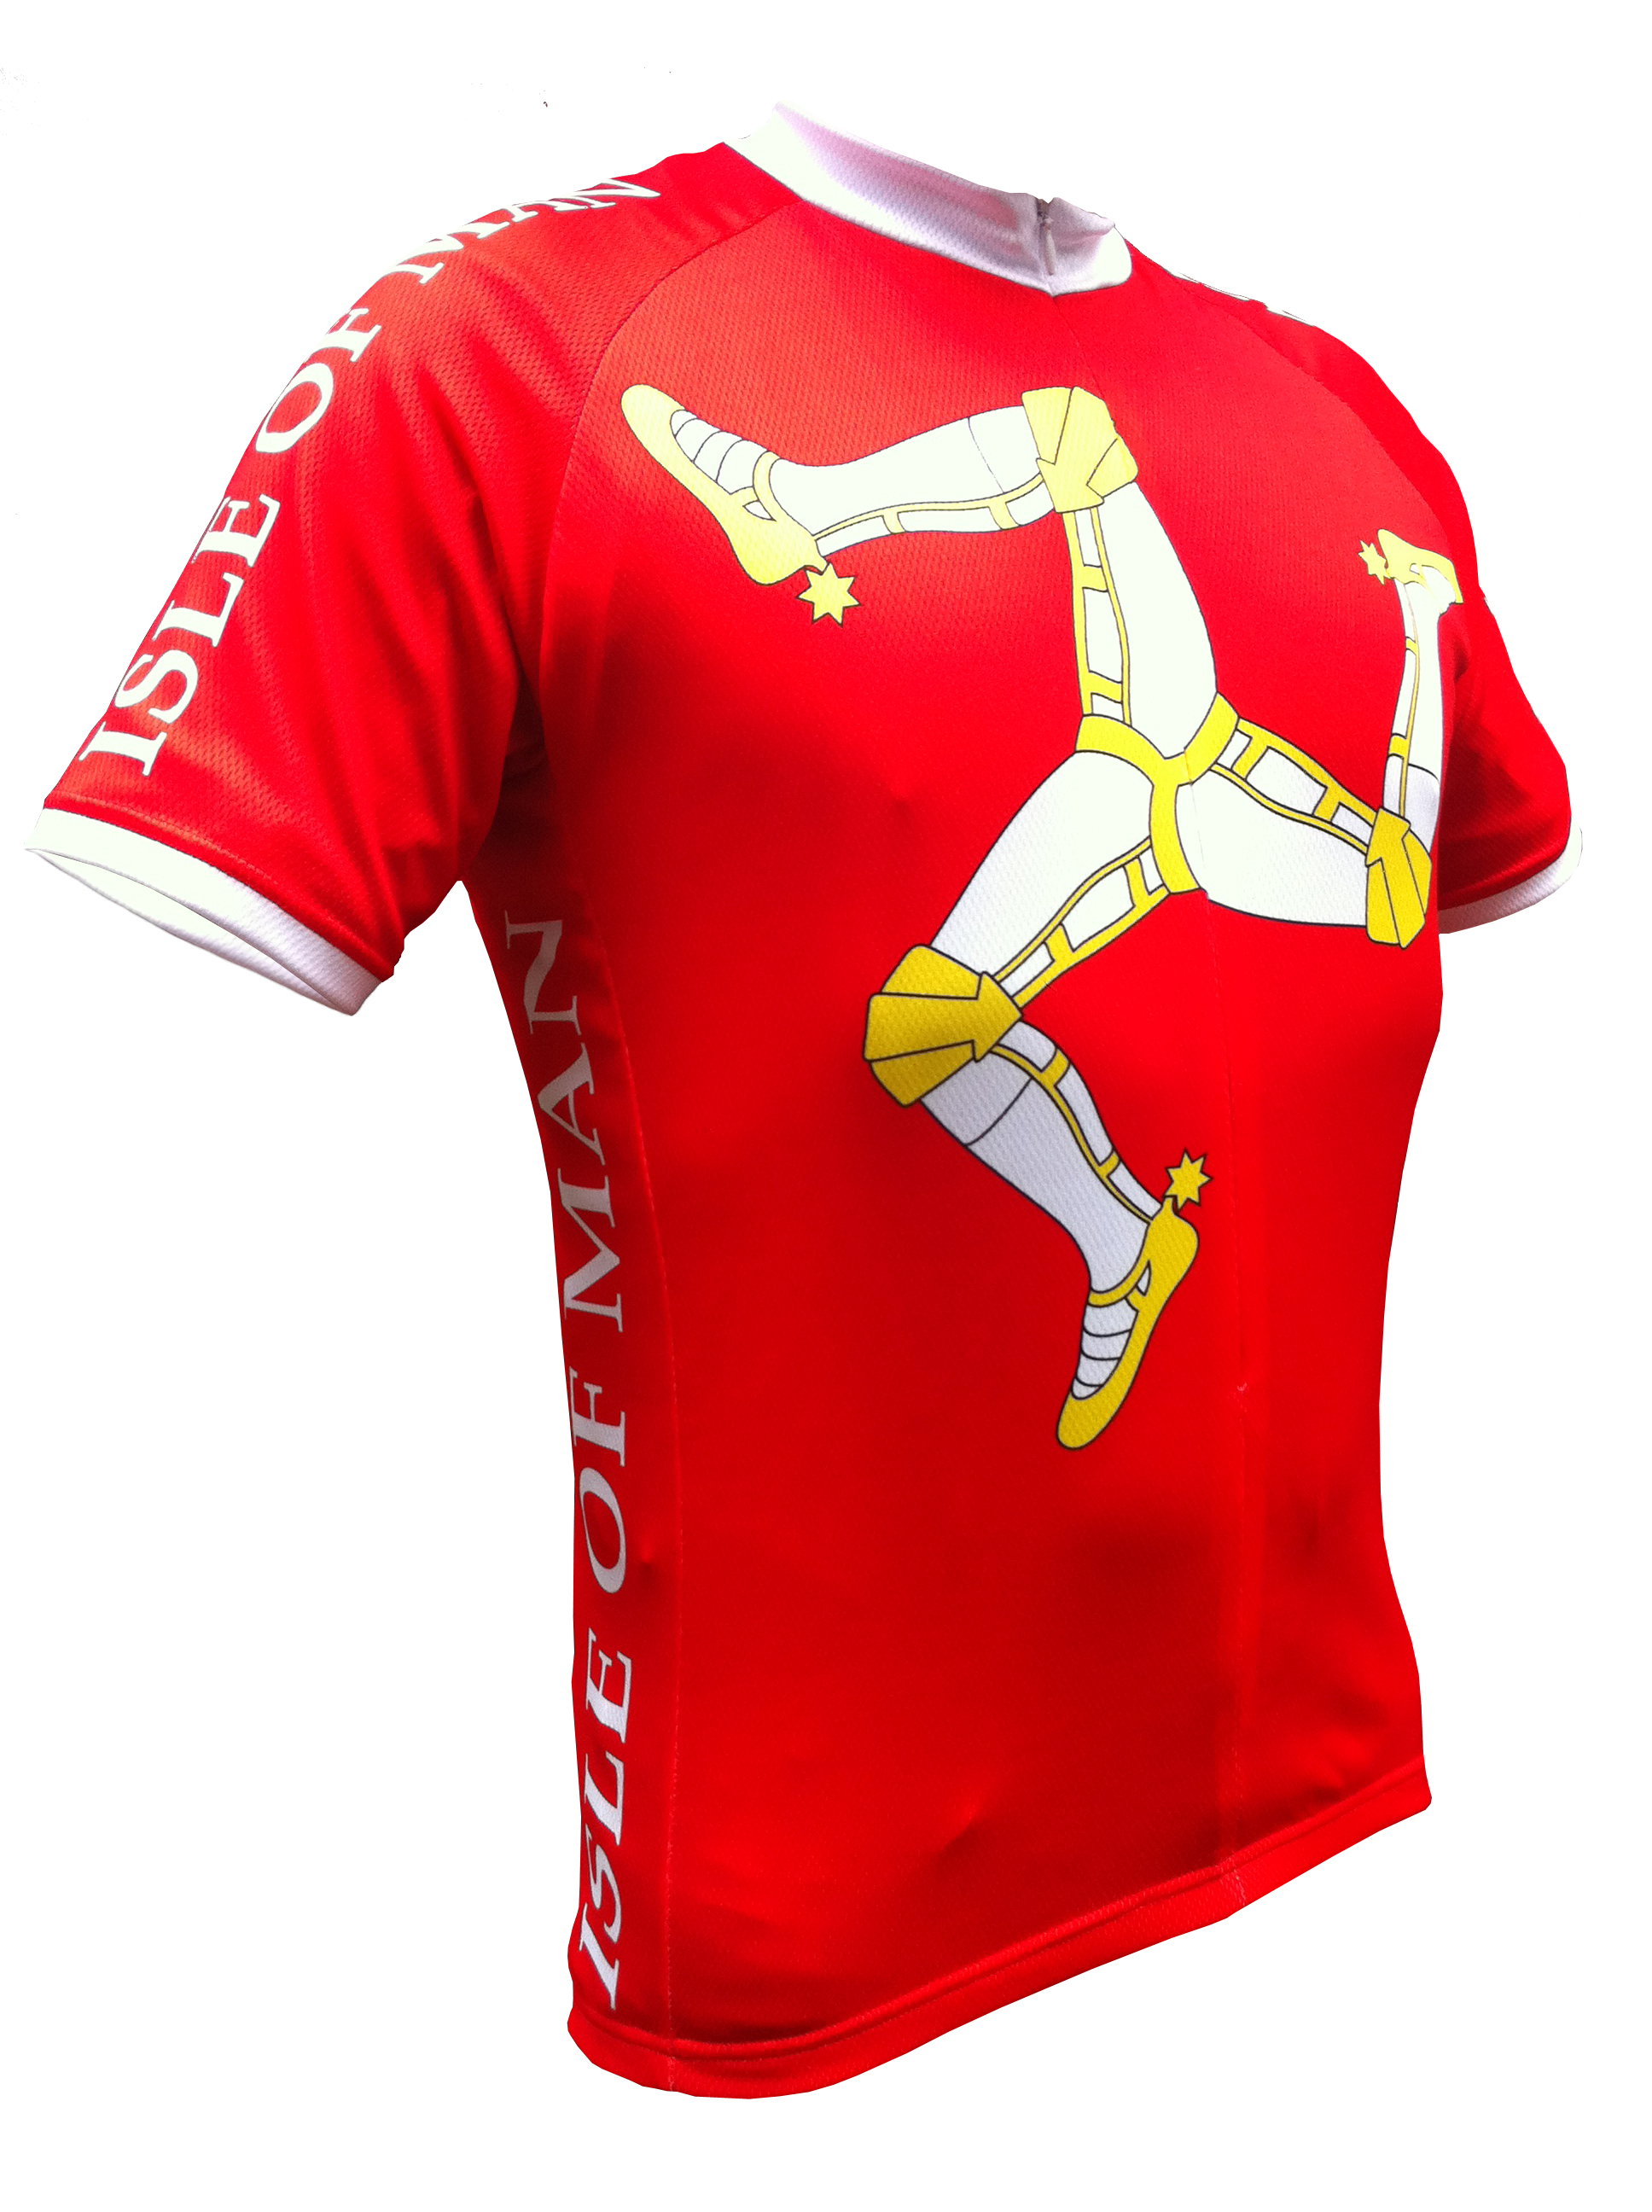 Red Isle of Man Road Cycling Jersey fc8cfe7f4